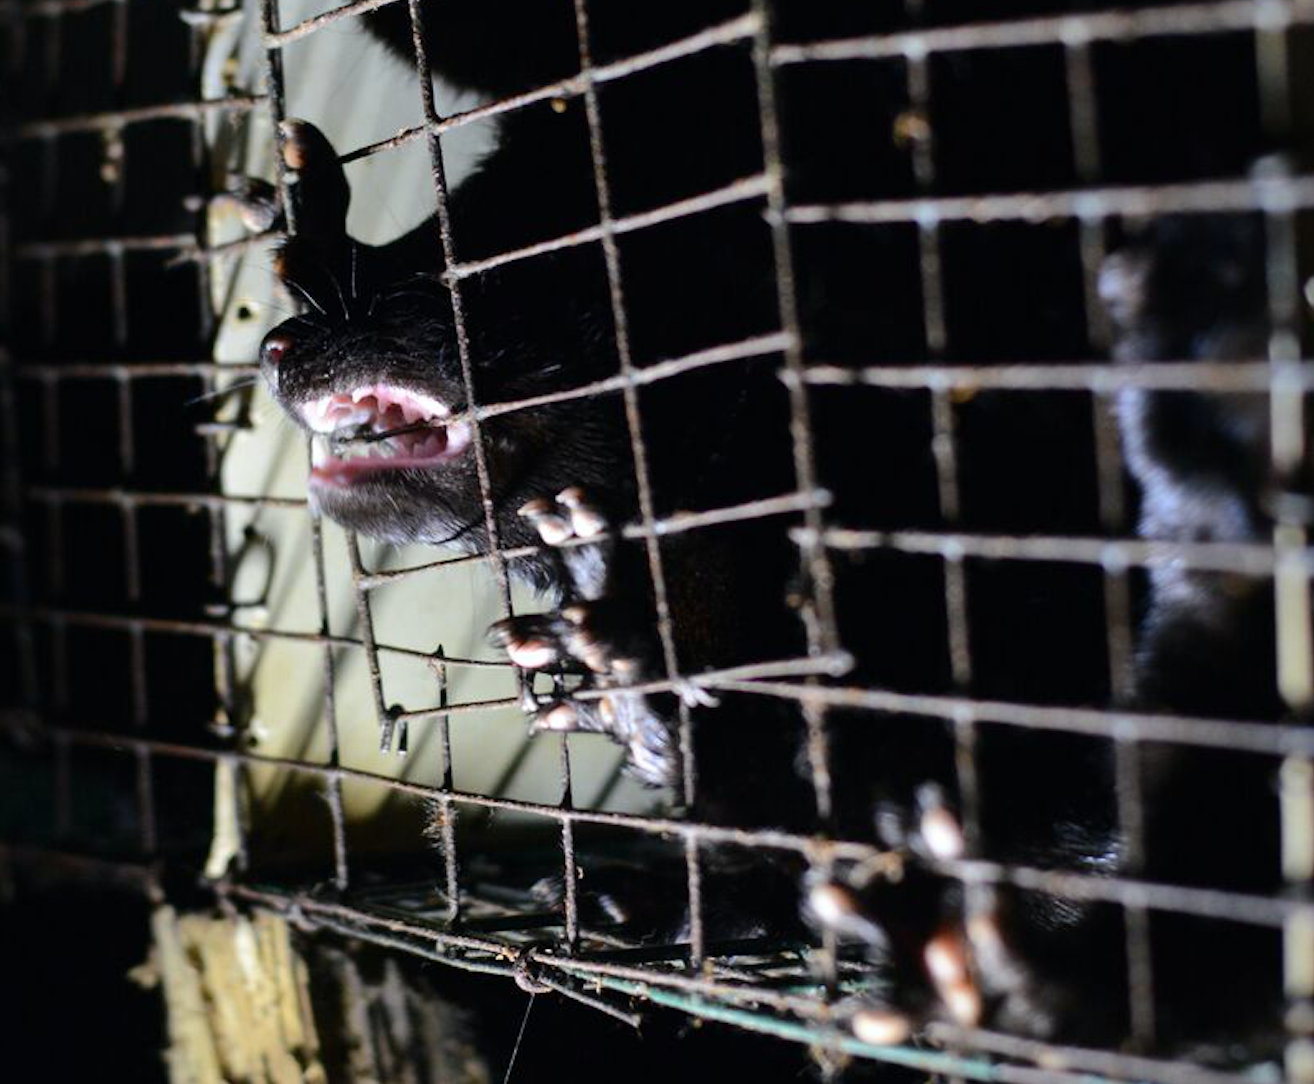 Mink farm, fur farm, Canada fur trade, fur industry, mink, fashion, animal cruelty, cannibalism